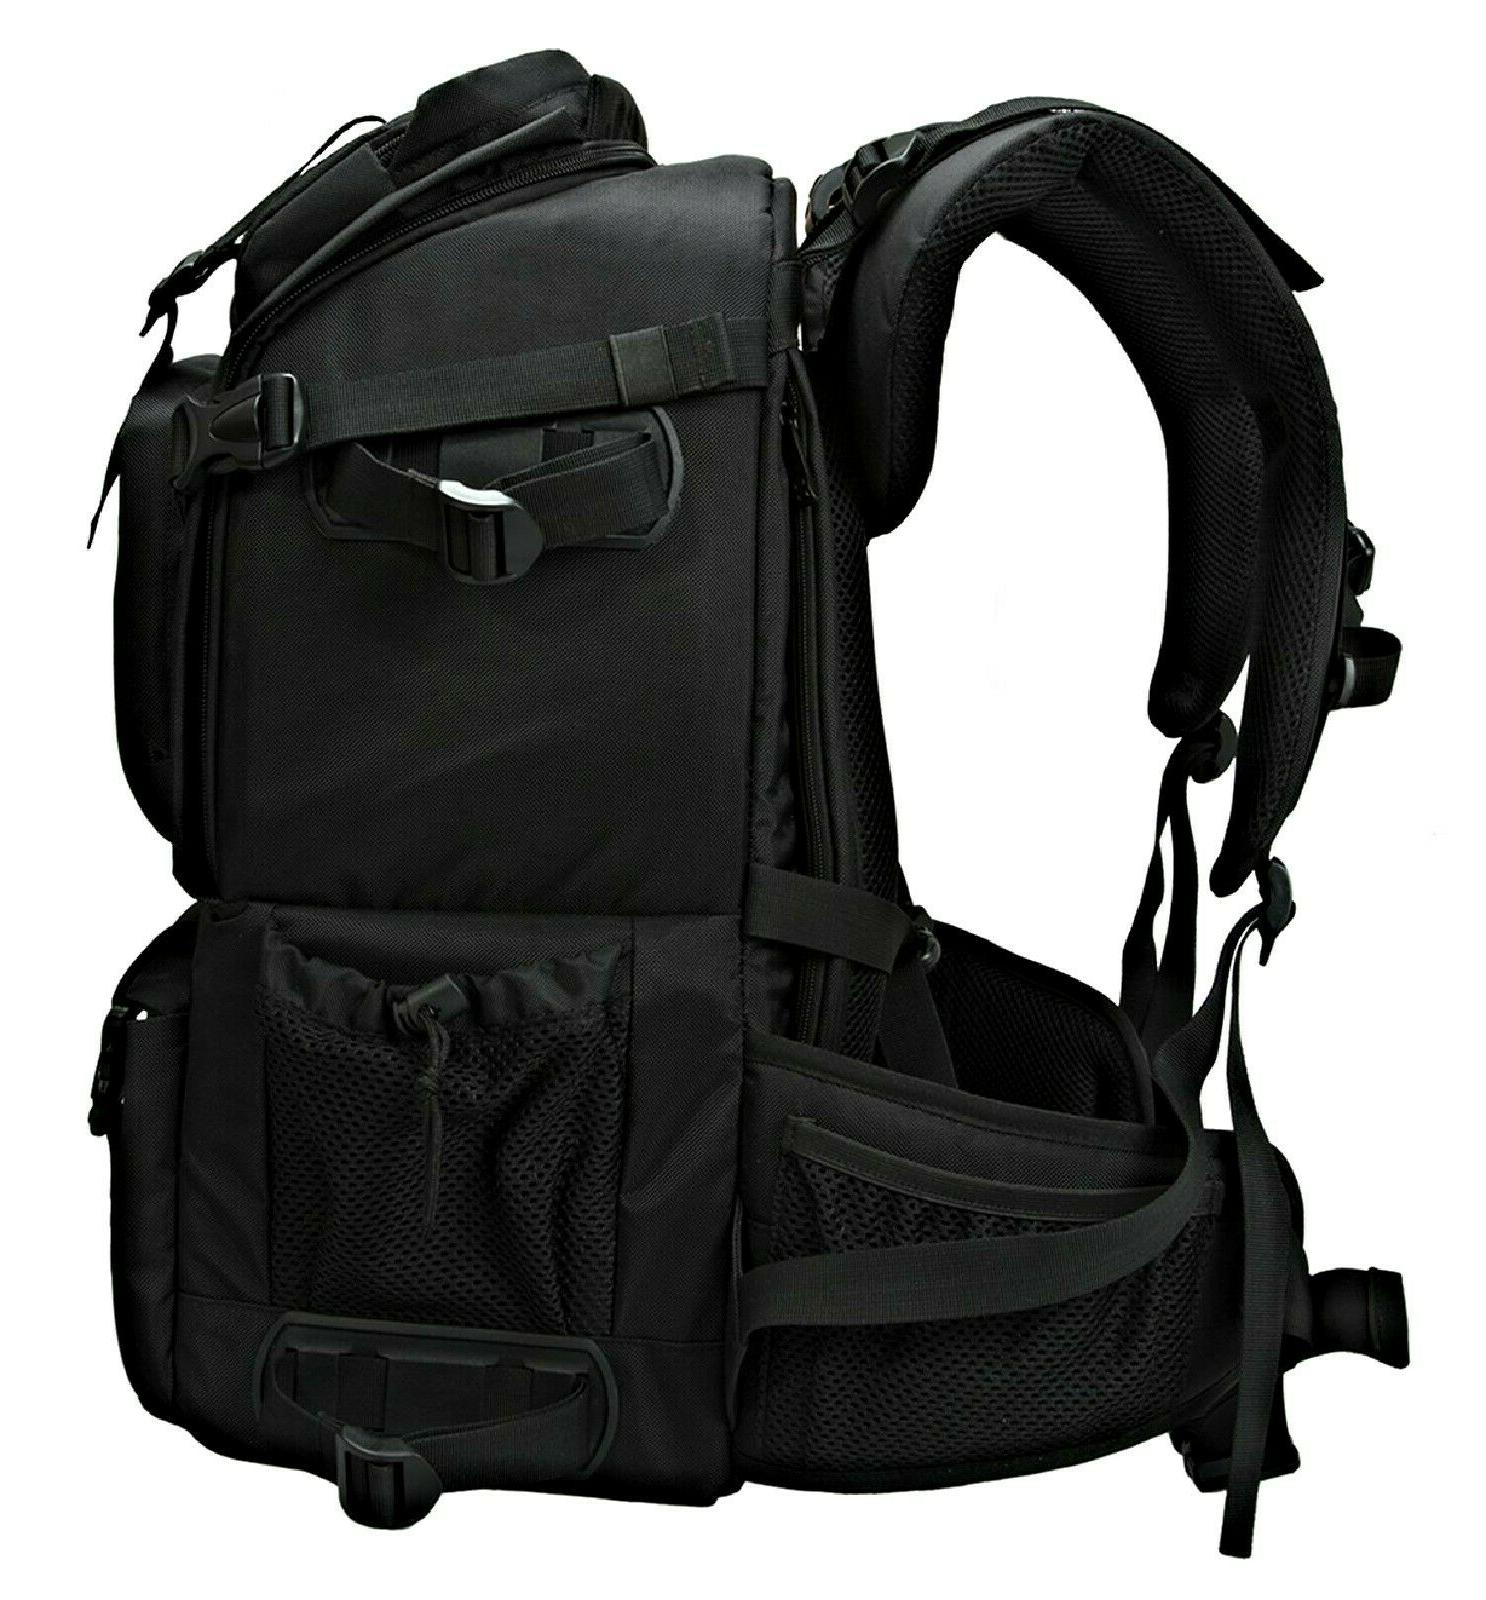 BAGSMART Olympus Photo Backpack DSLR